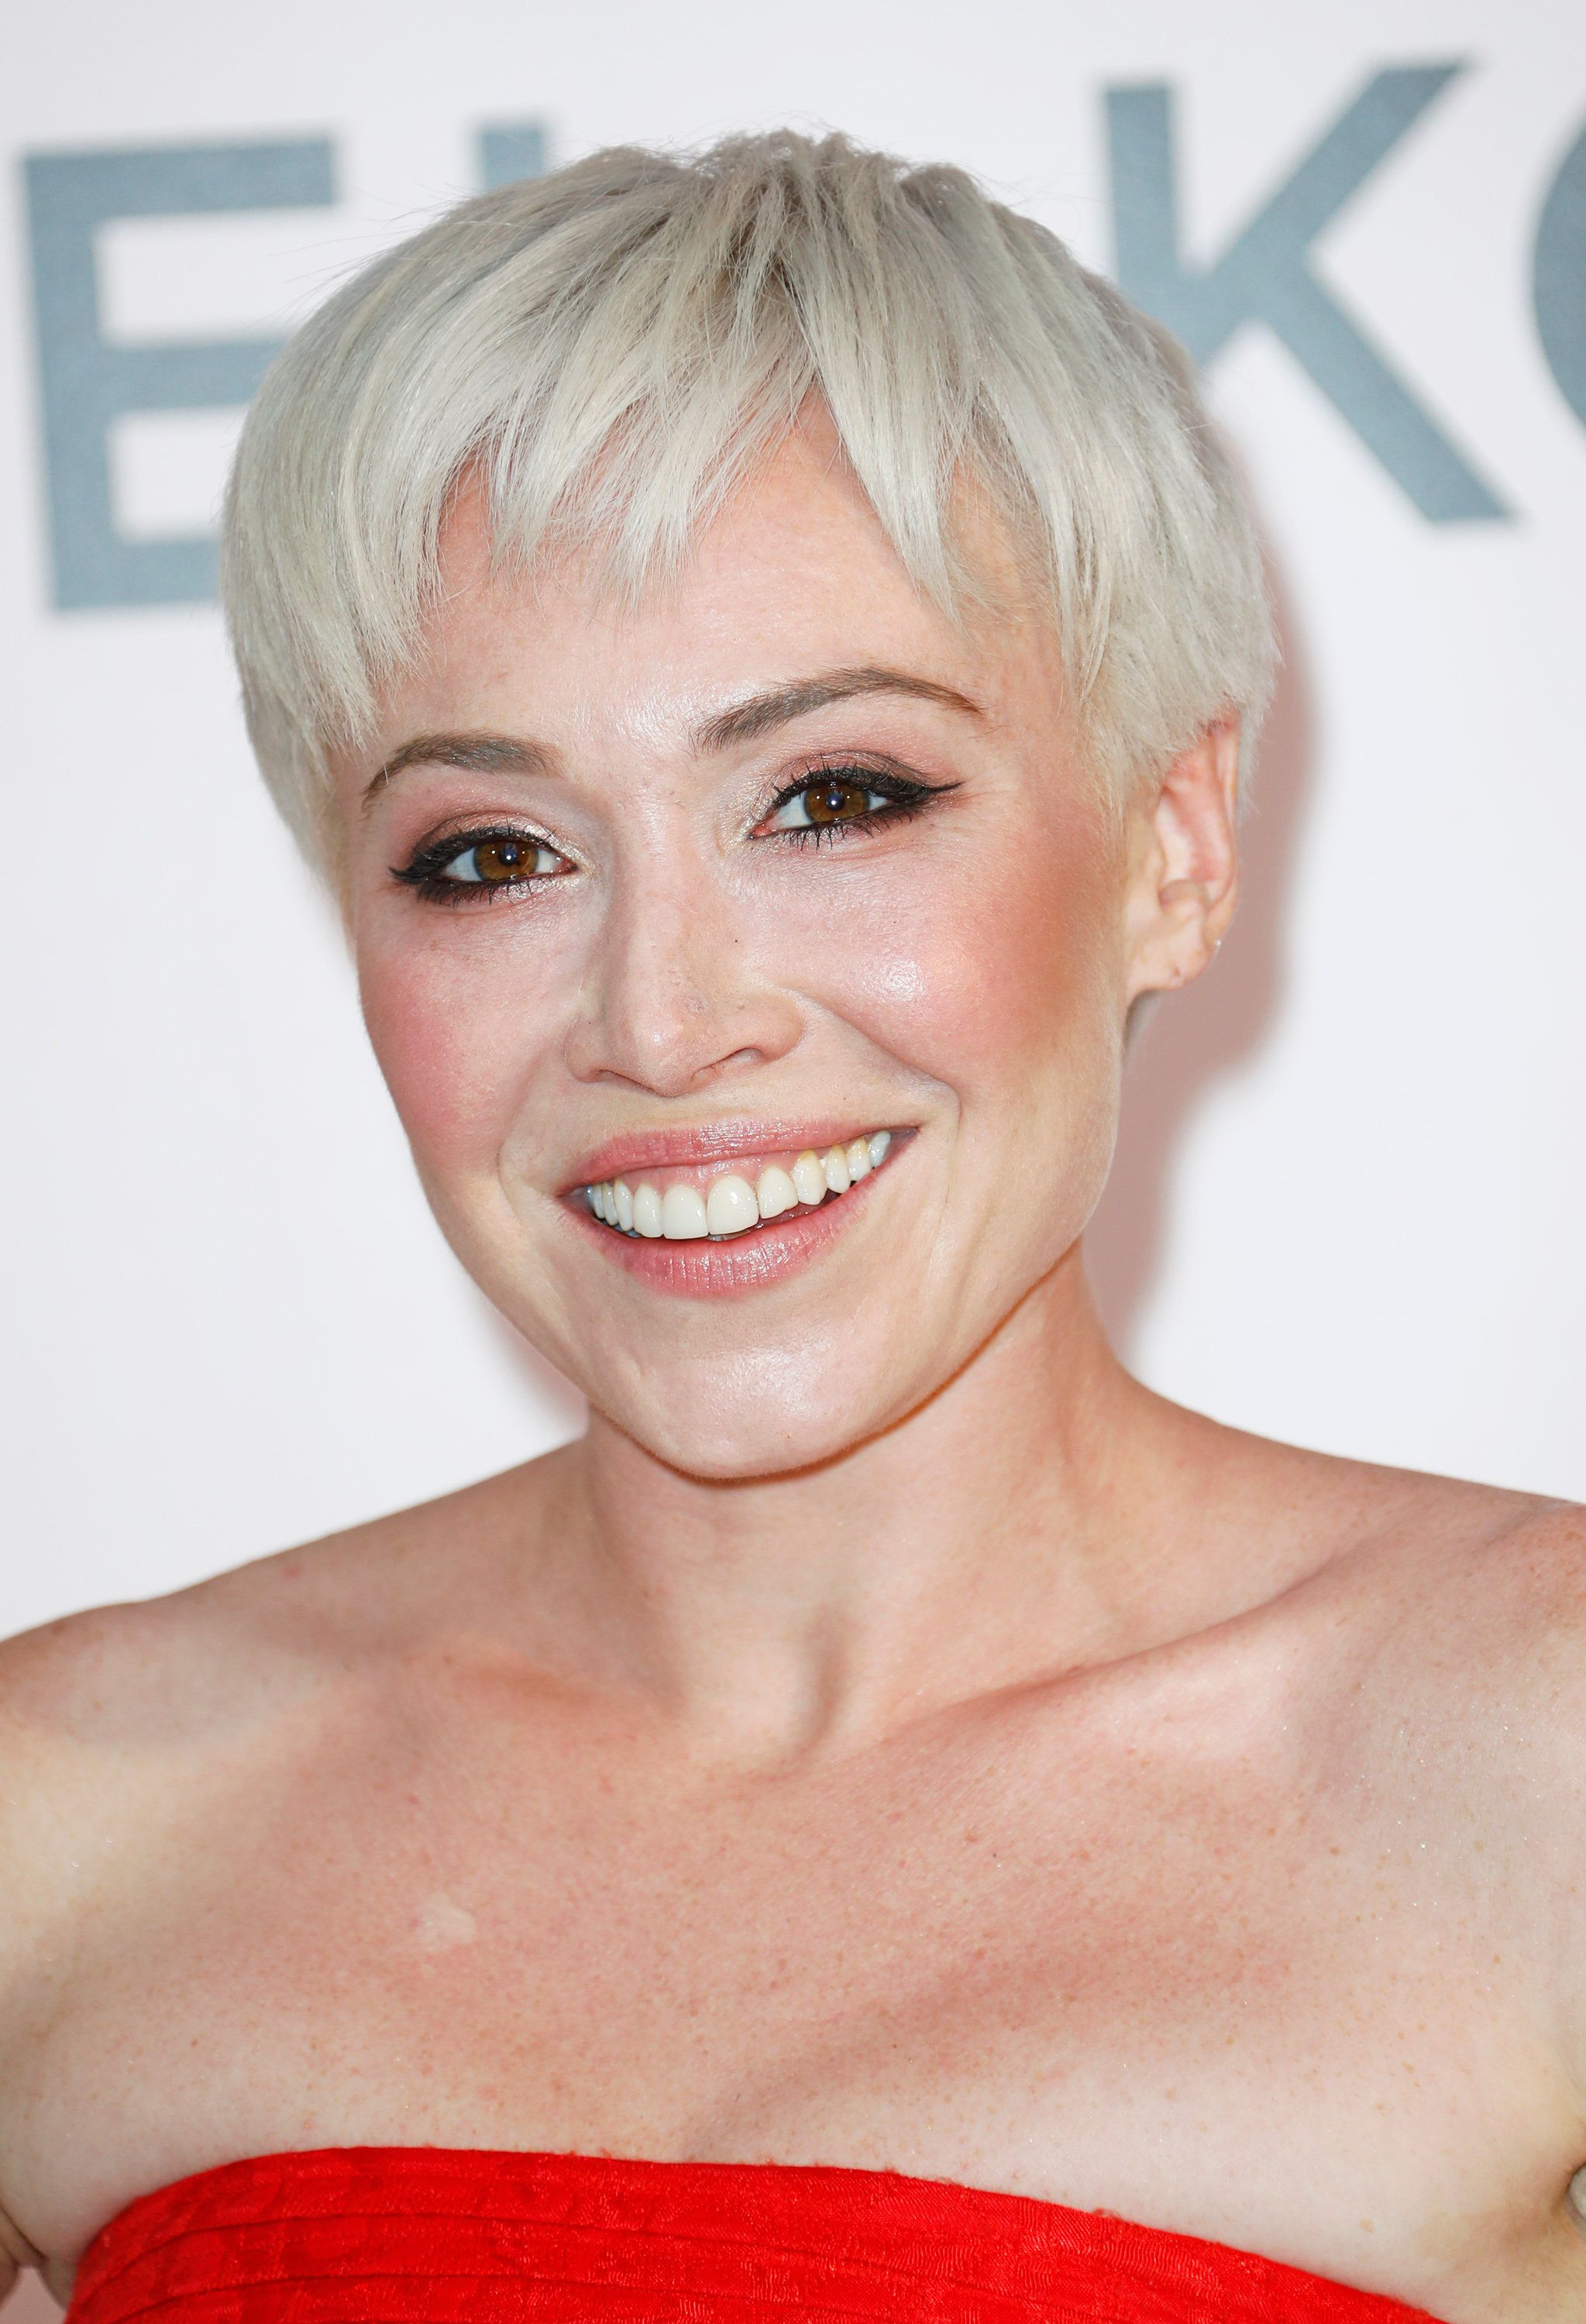 <strong>Actress Daisy Lewis has hit out at Tatler over an article which suggested she was 'fun in bed'</strong>